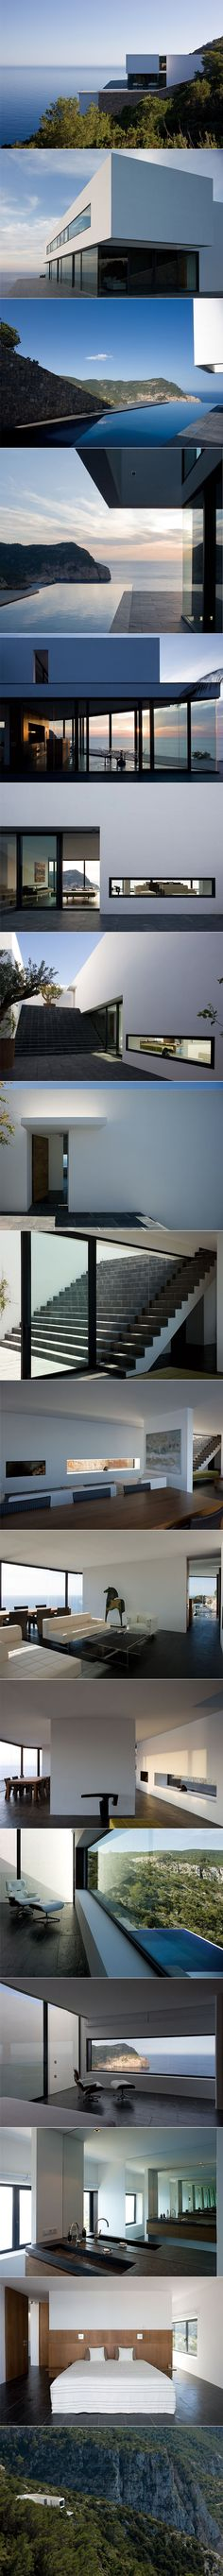 Maison AIBS by Bruno Erpicum and Partners. Spain